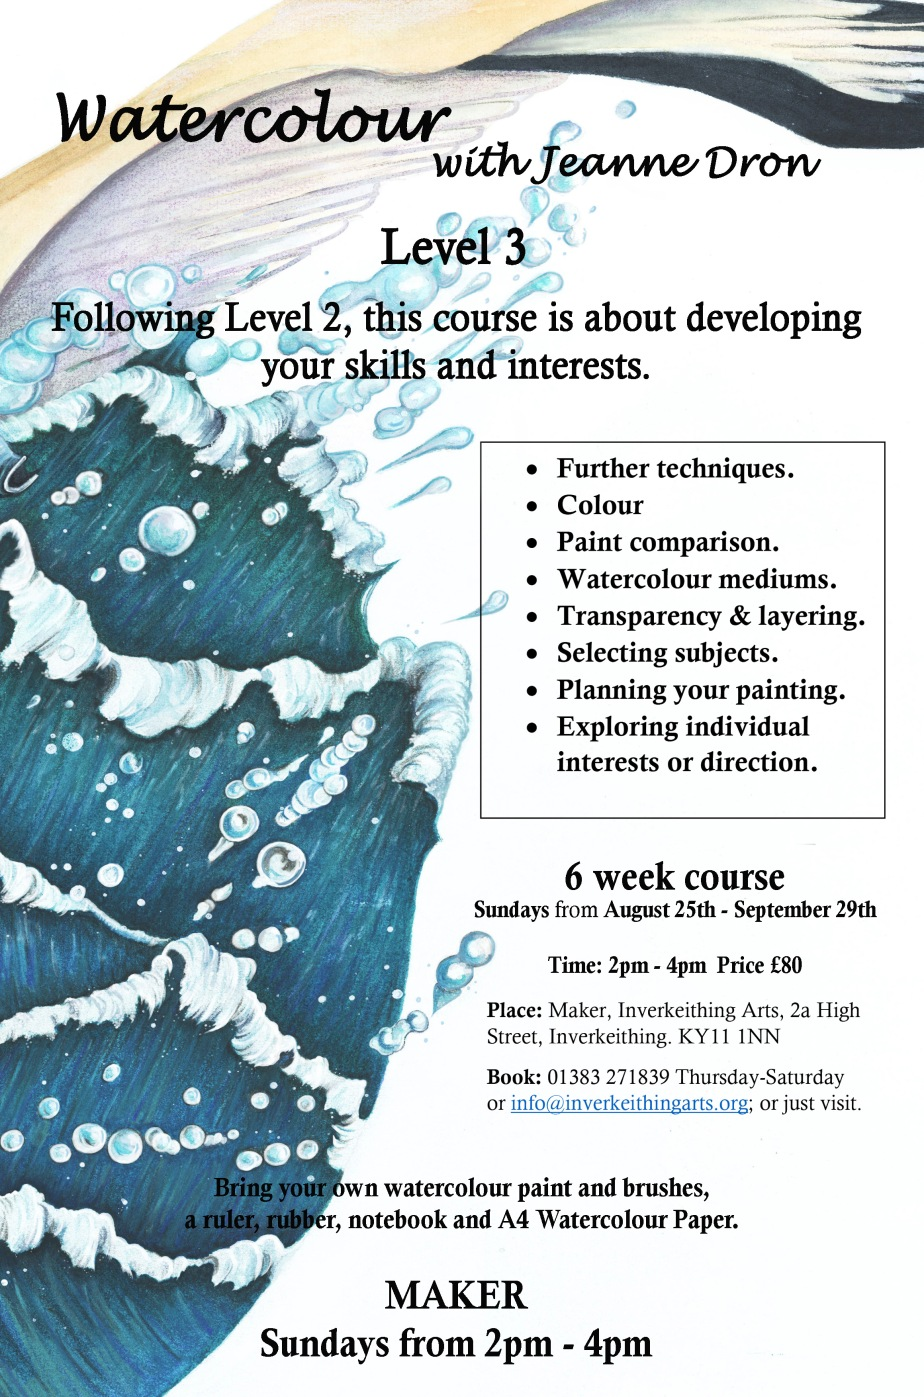 Level 3 August 2019